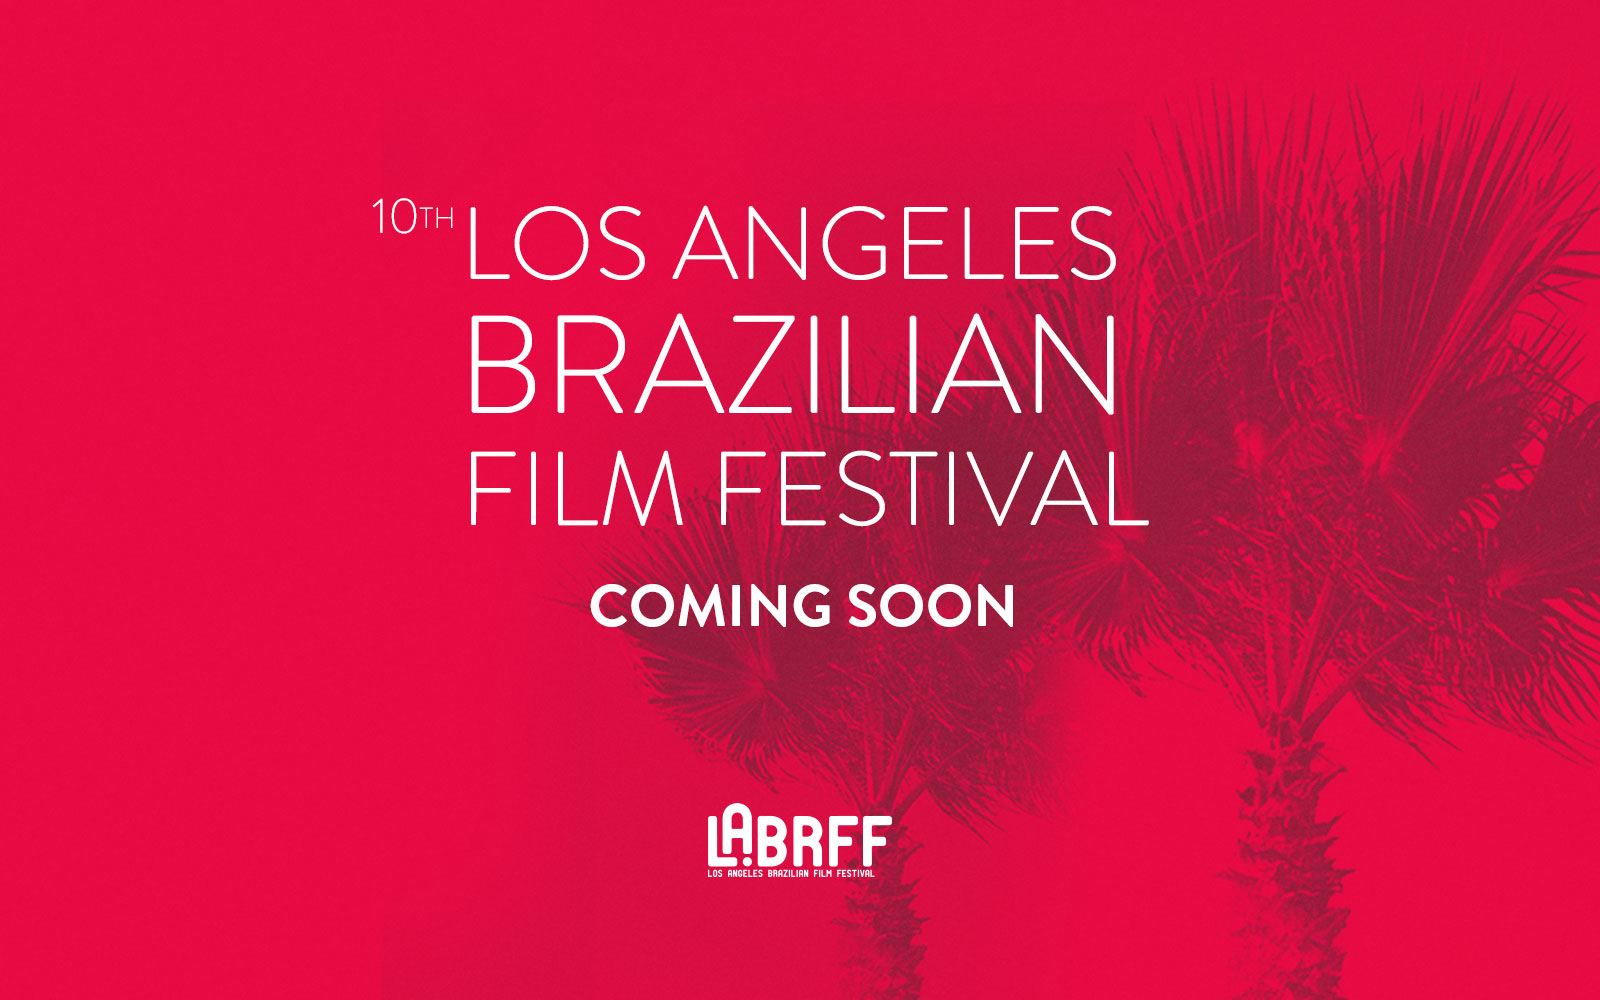 9th Los Angeles Brazilian Film Festival | 17th - 20th September - New website coming soon